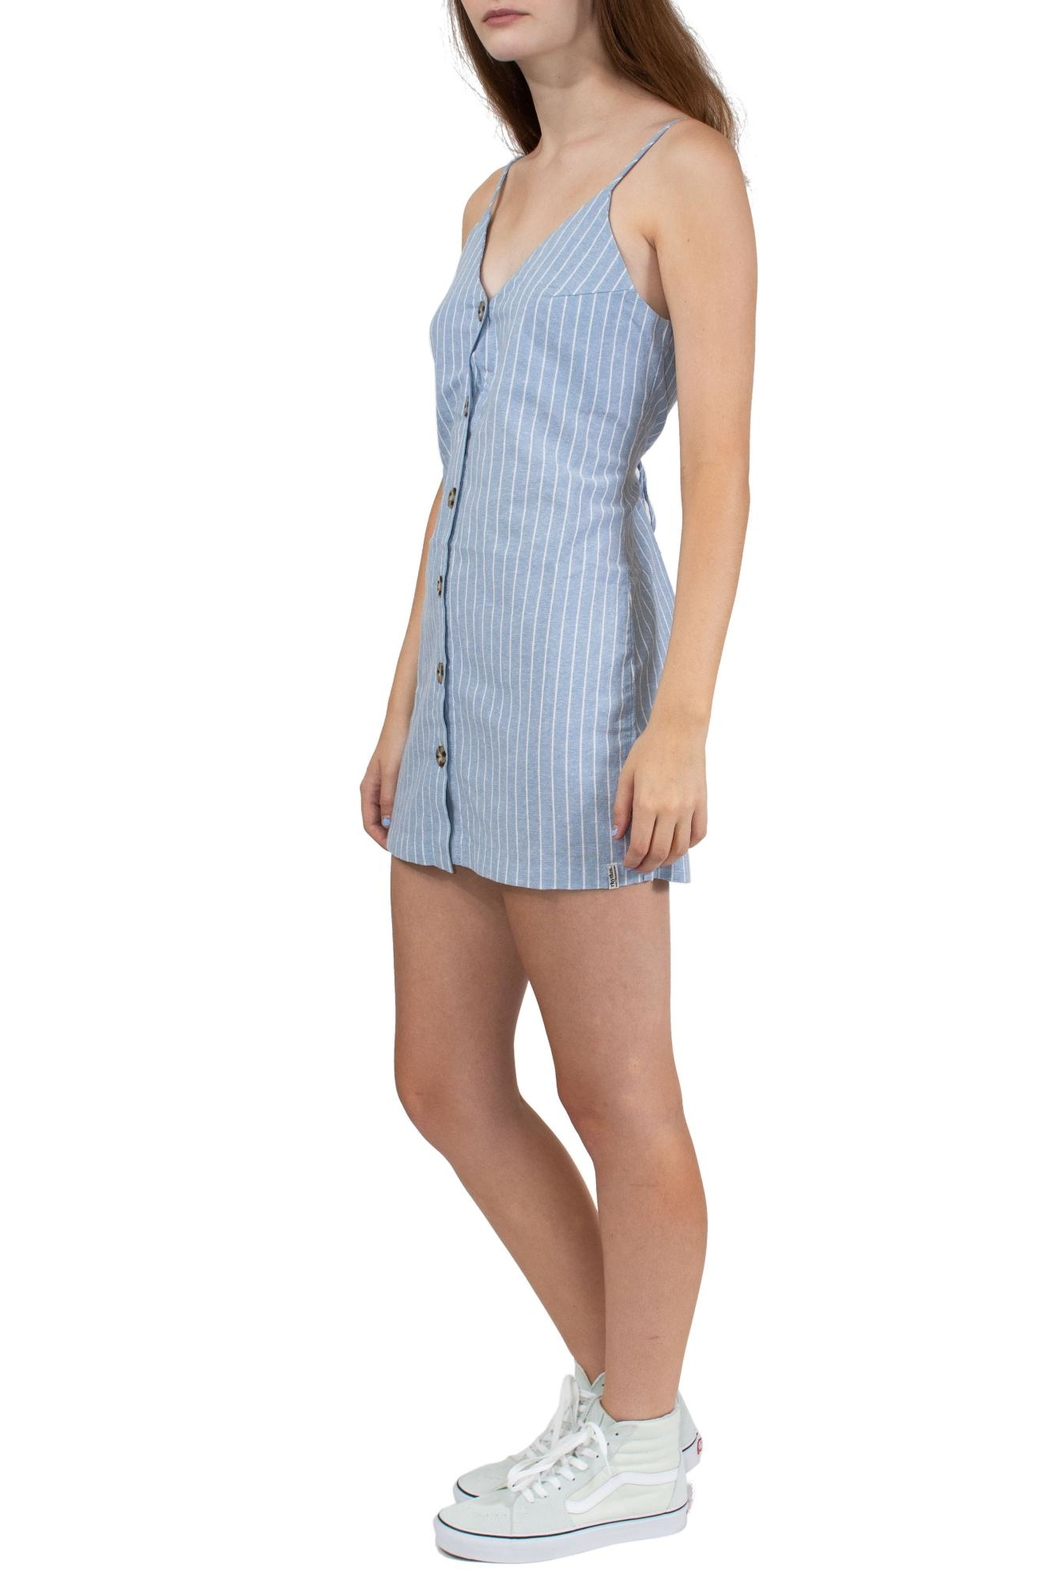 Rhythm  Sky Castaway Dress - Front Full Image